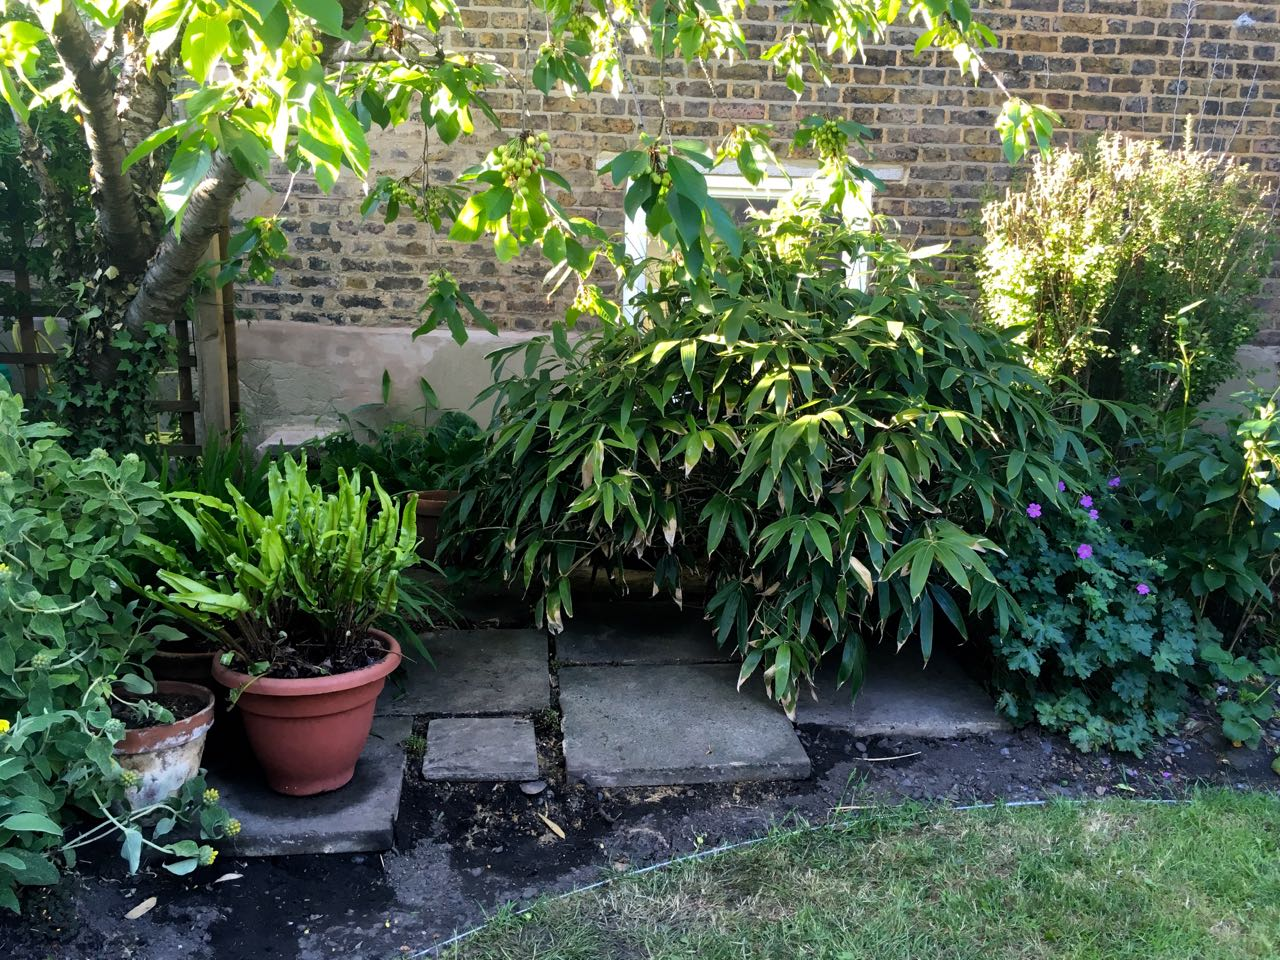 A new courtyard-like area under the cherry tree